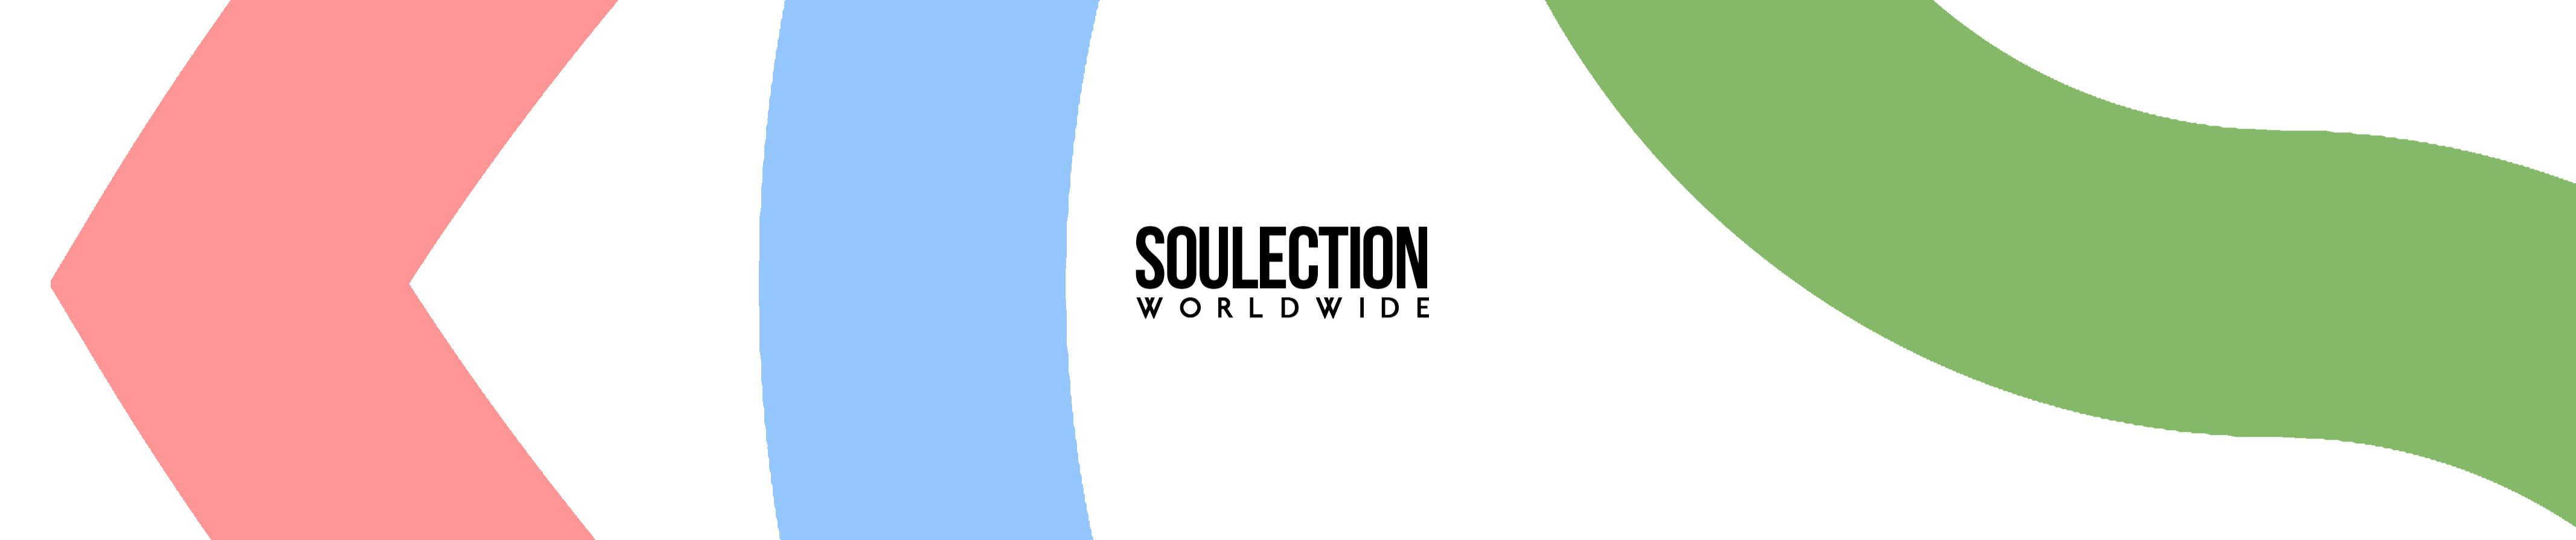 SOULECTION | Free Listening on SoundCloud